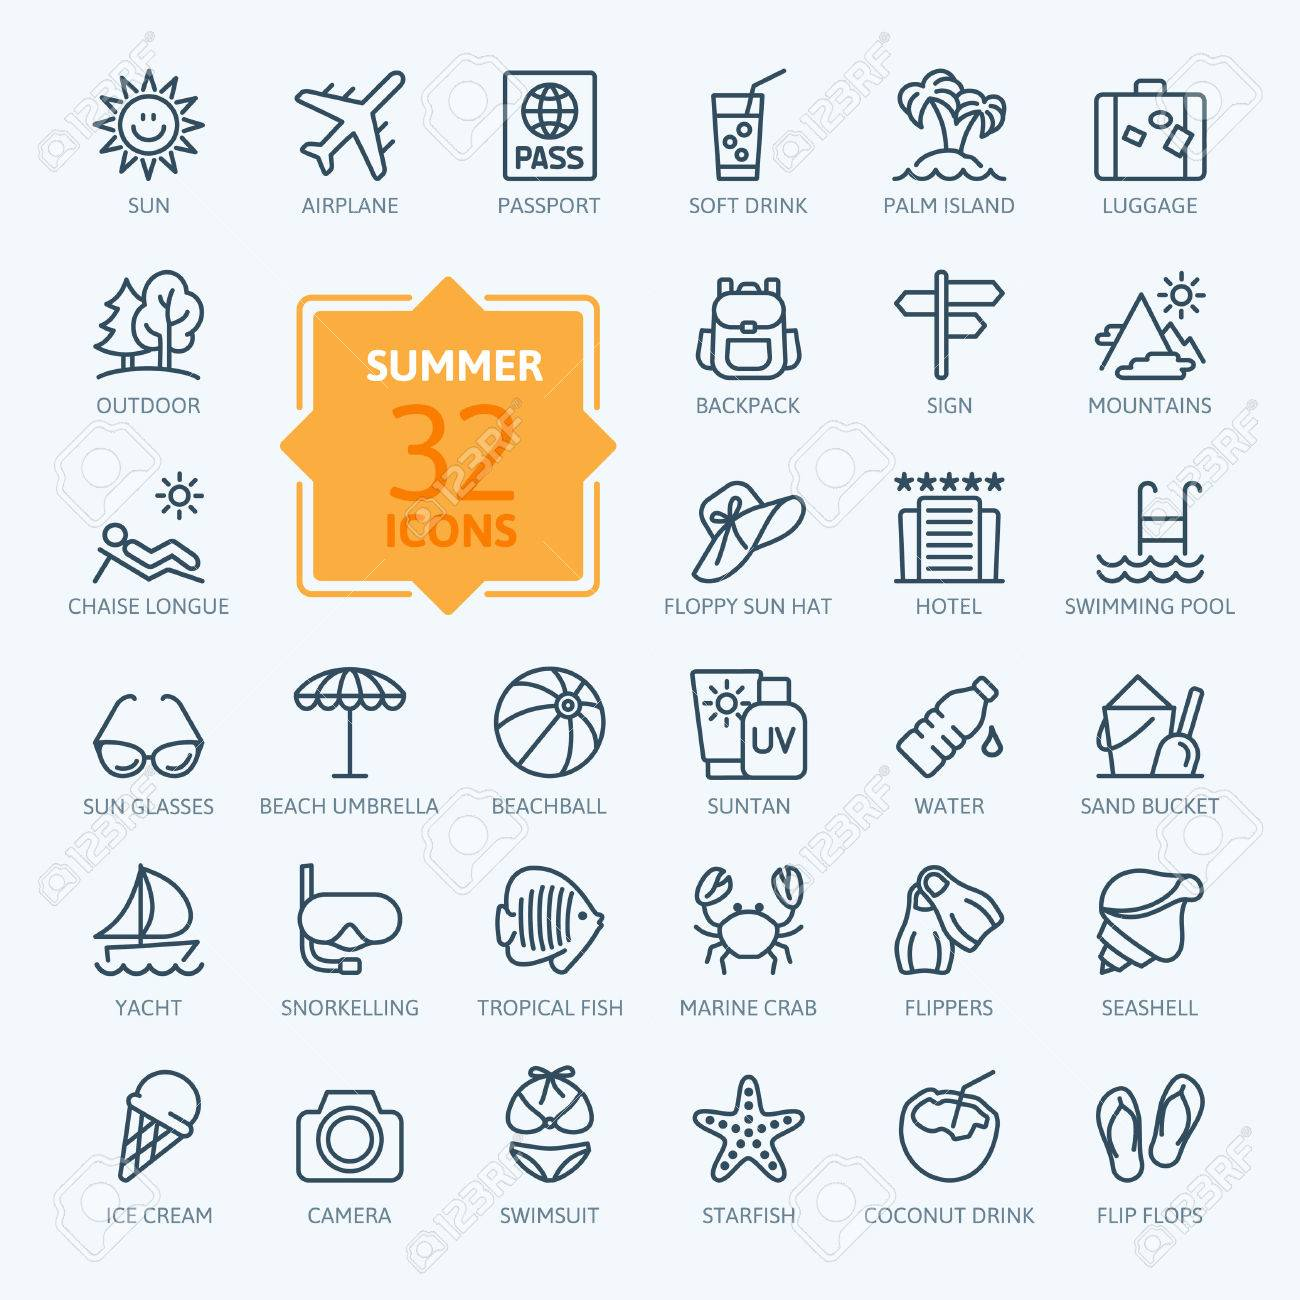 Outline web icon set - summer, vacation, beach - 59925325